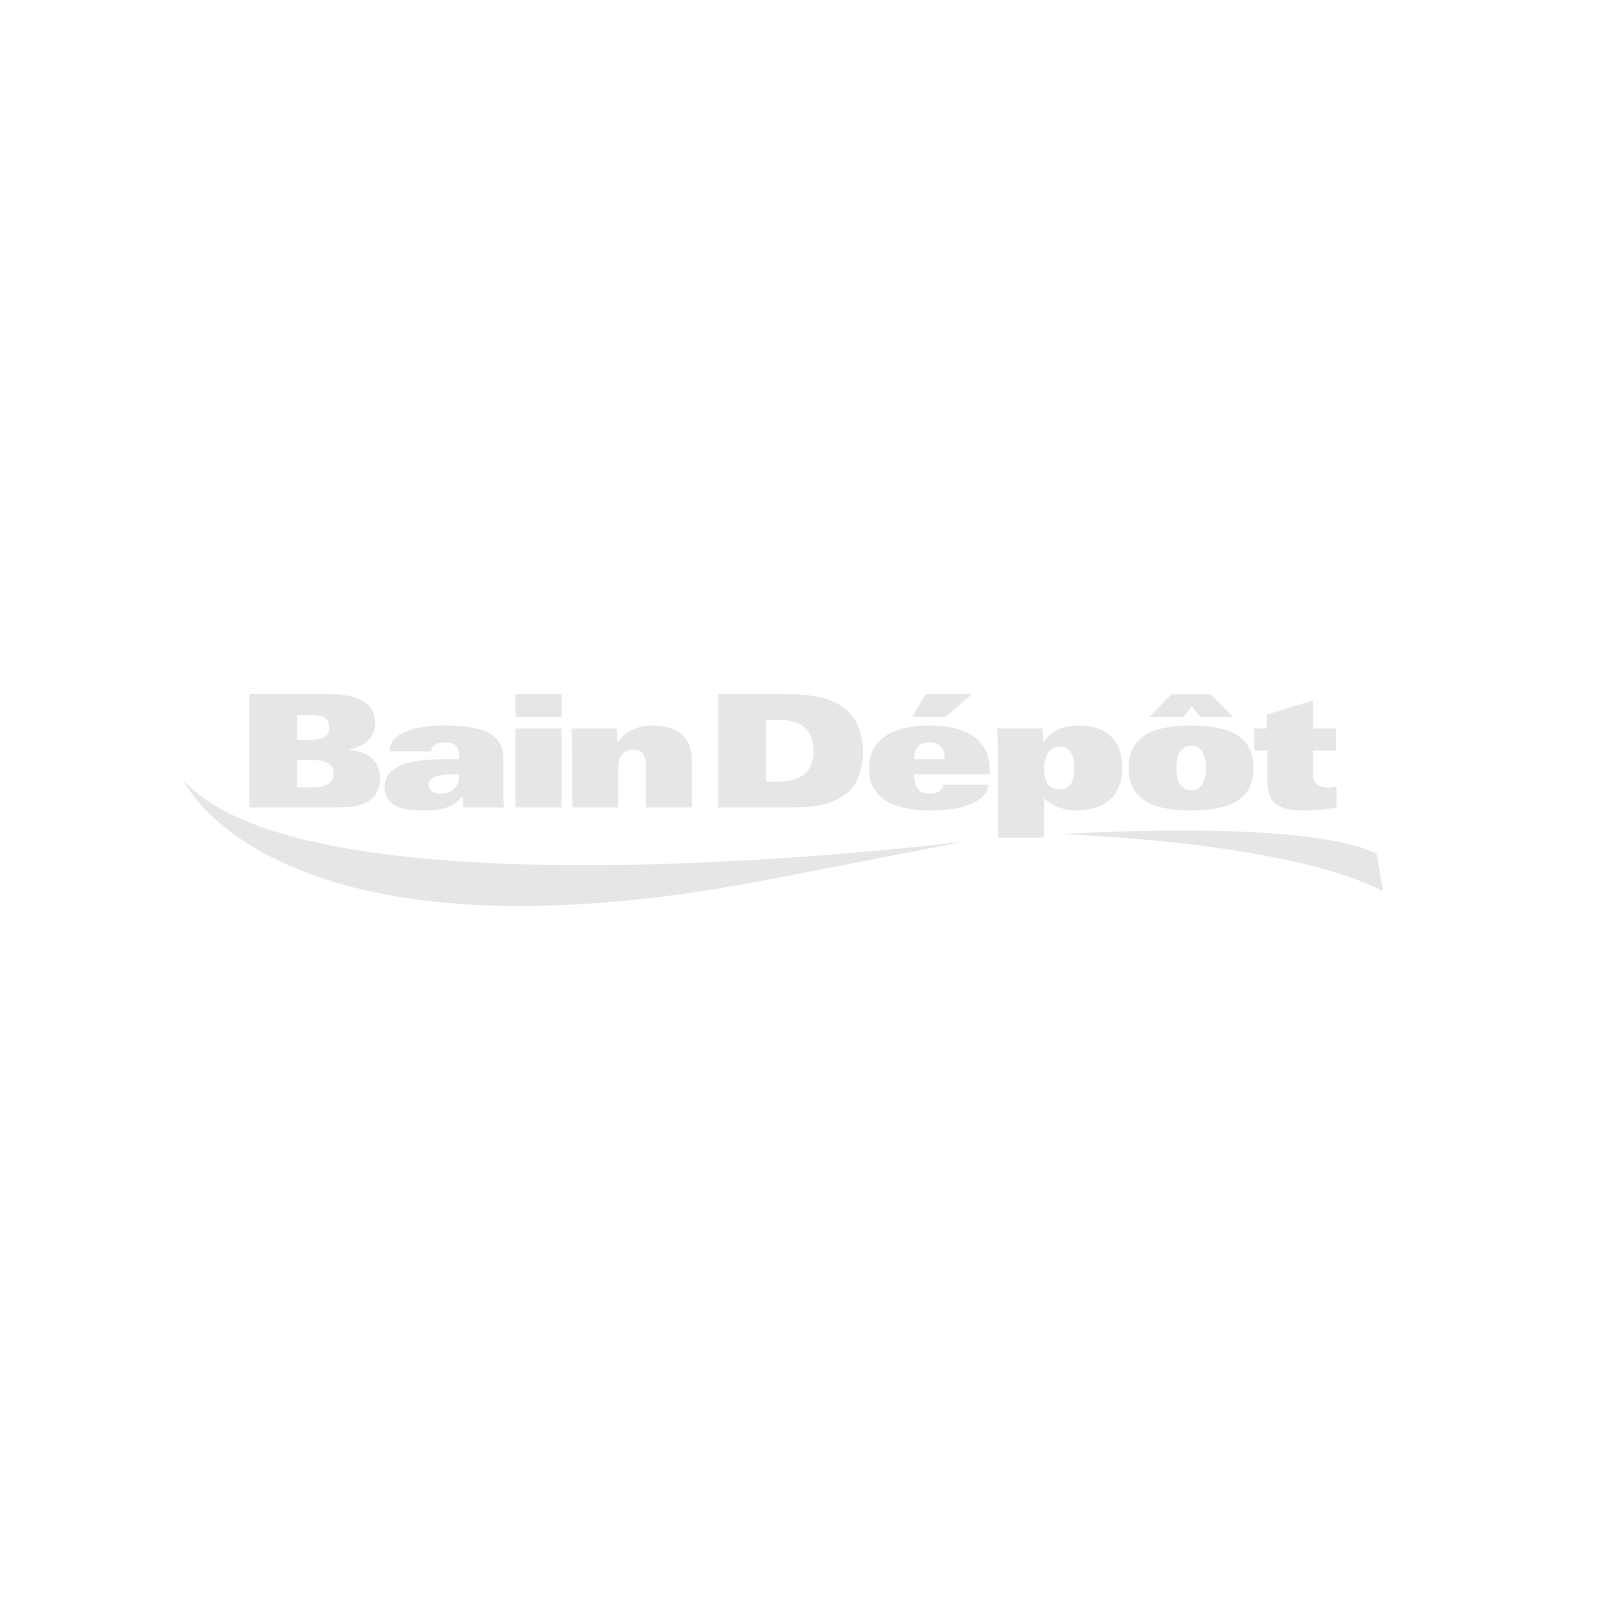 DUO - Double kitchen sink with black faucet, colander and black glass cutting board